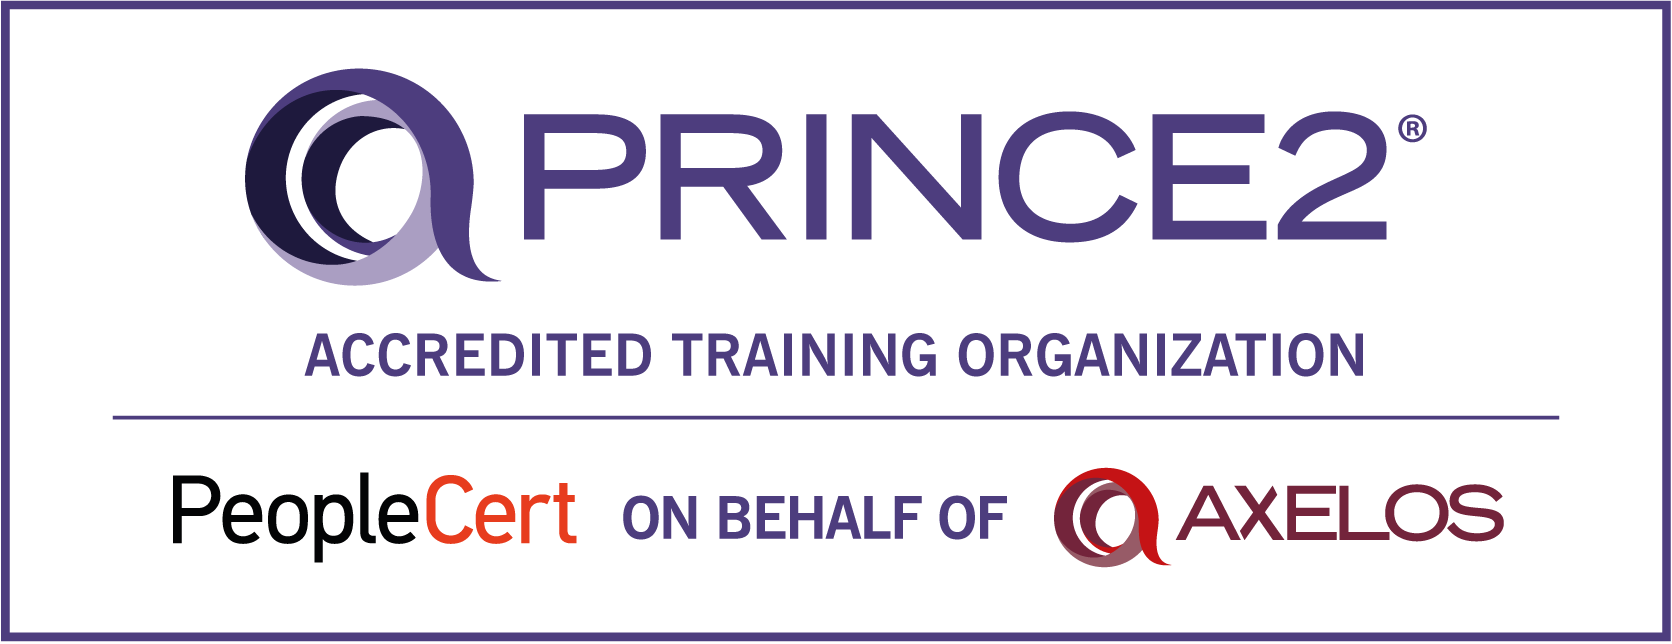 formation prince2 foundation & practitioner, cours prince2, prince2 foundation et practitioner